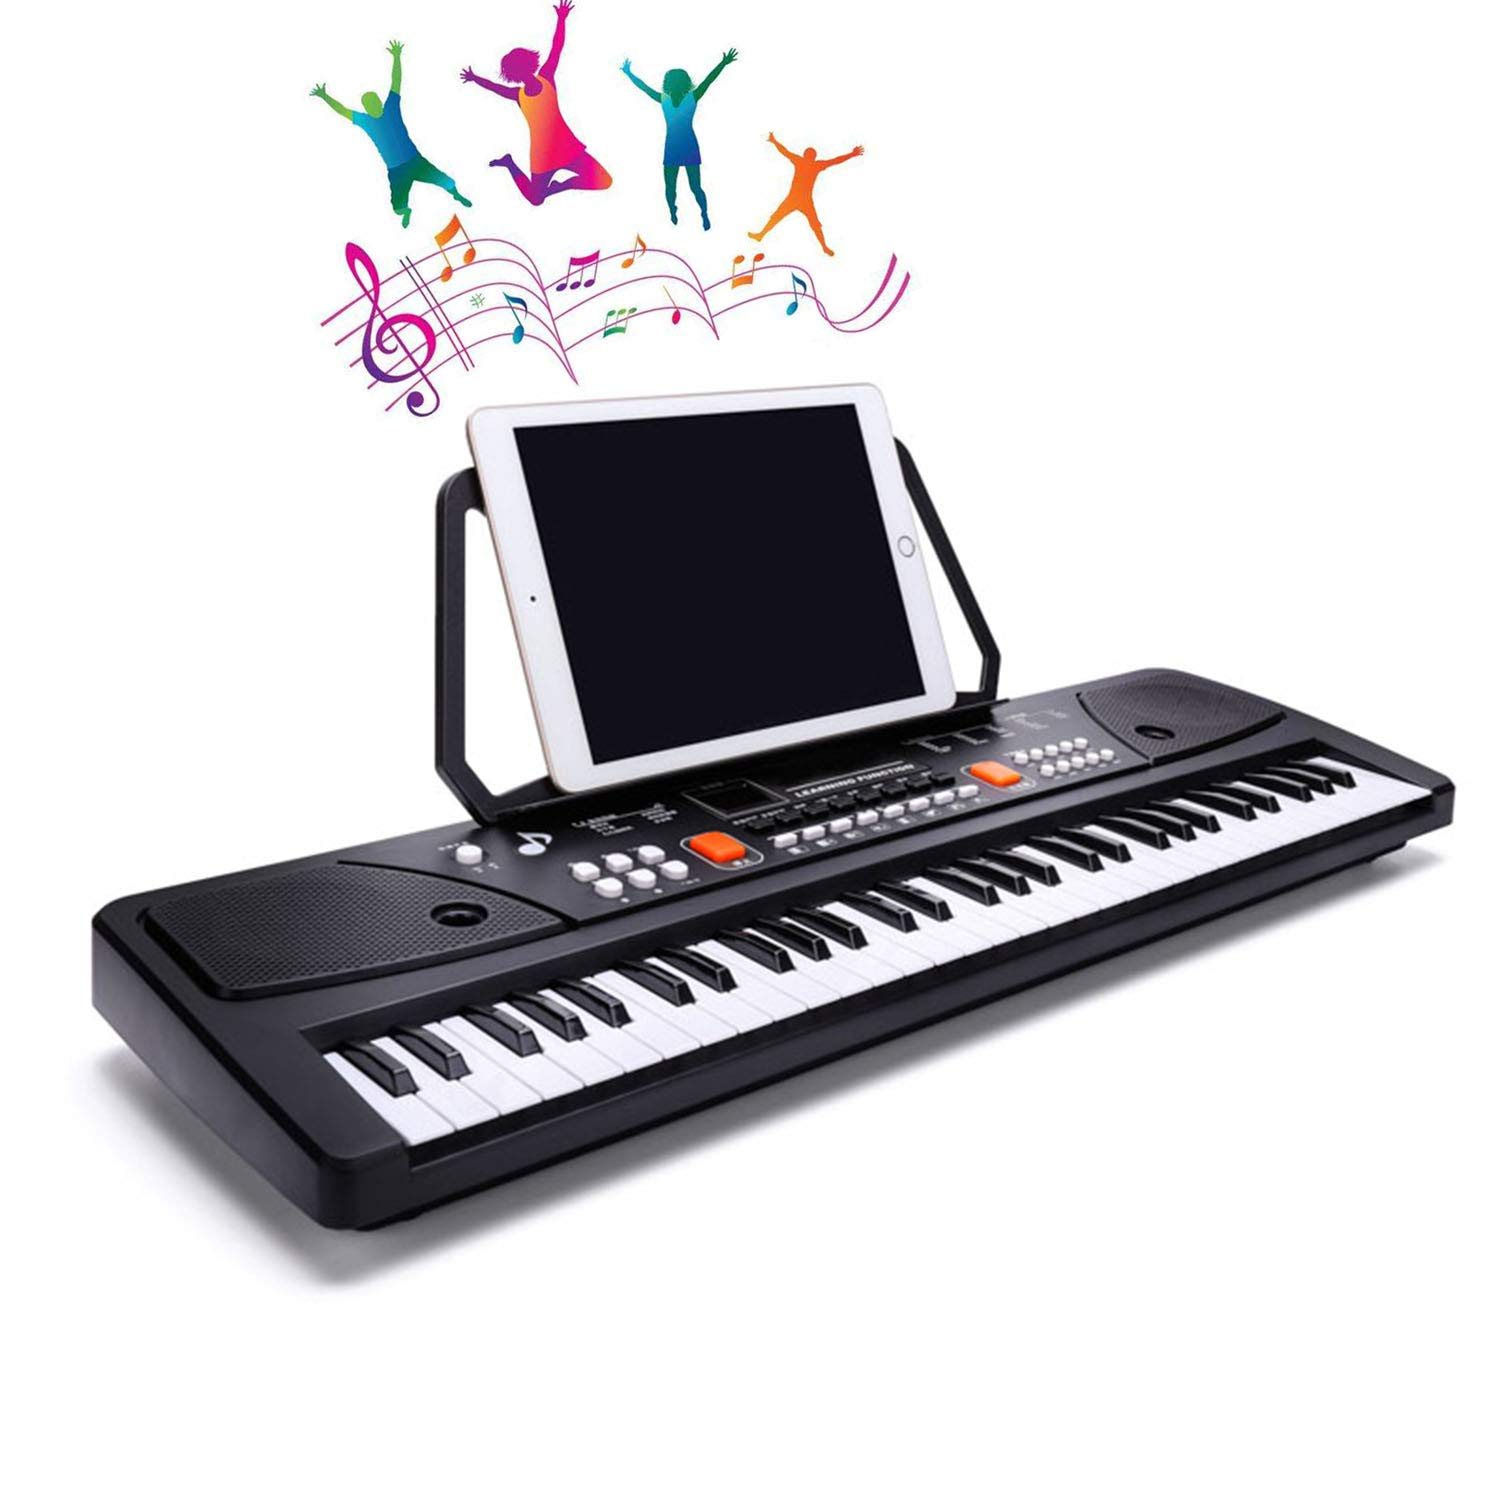 LYBALL Kids Keyboard 61 Keys Piano Multi-Function LED Musical Piano Rechargable Electronic Keyboard & Sheet Music Stand for Kids Birthday (61 Keys(24.8 Inch)) (61keys(24.8inch))